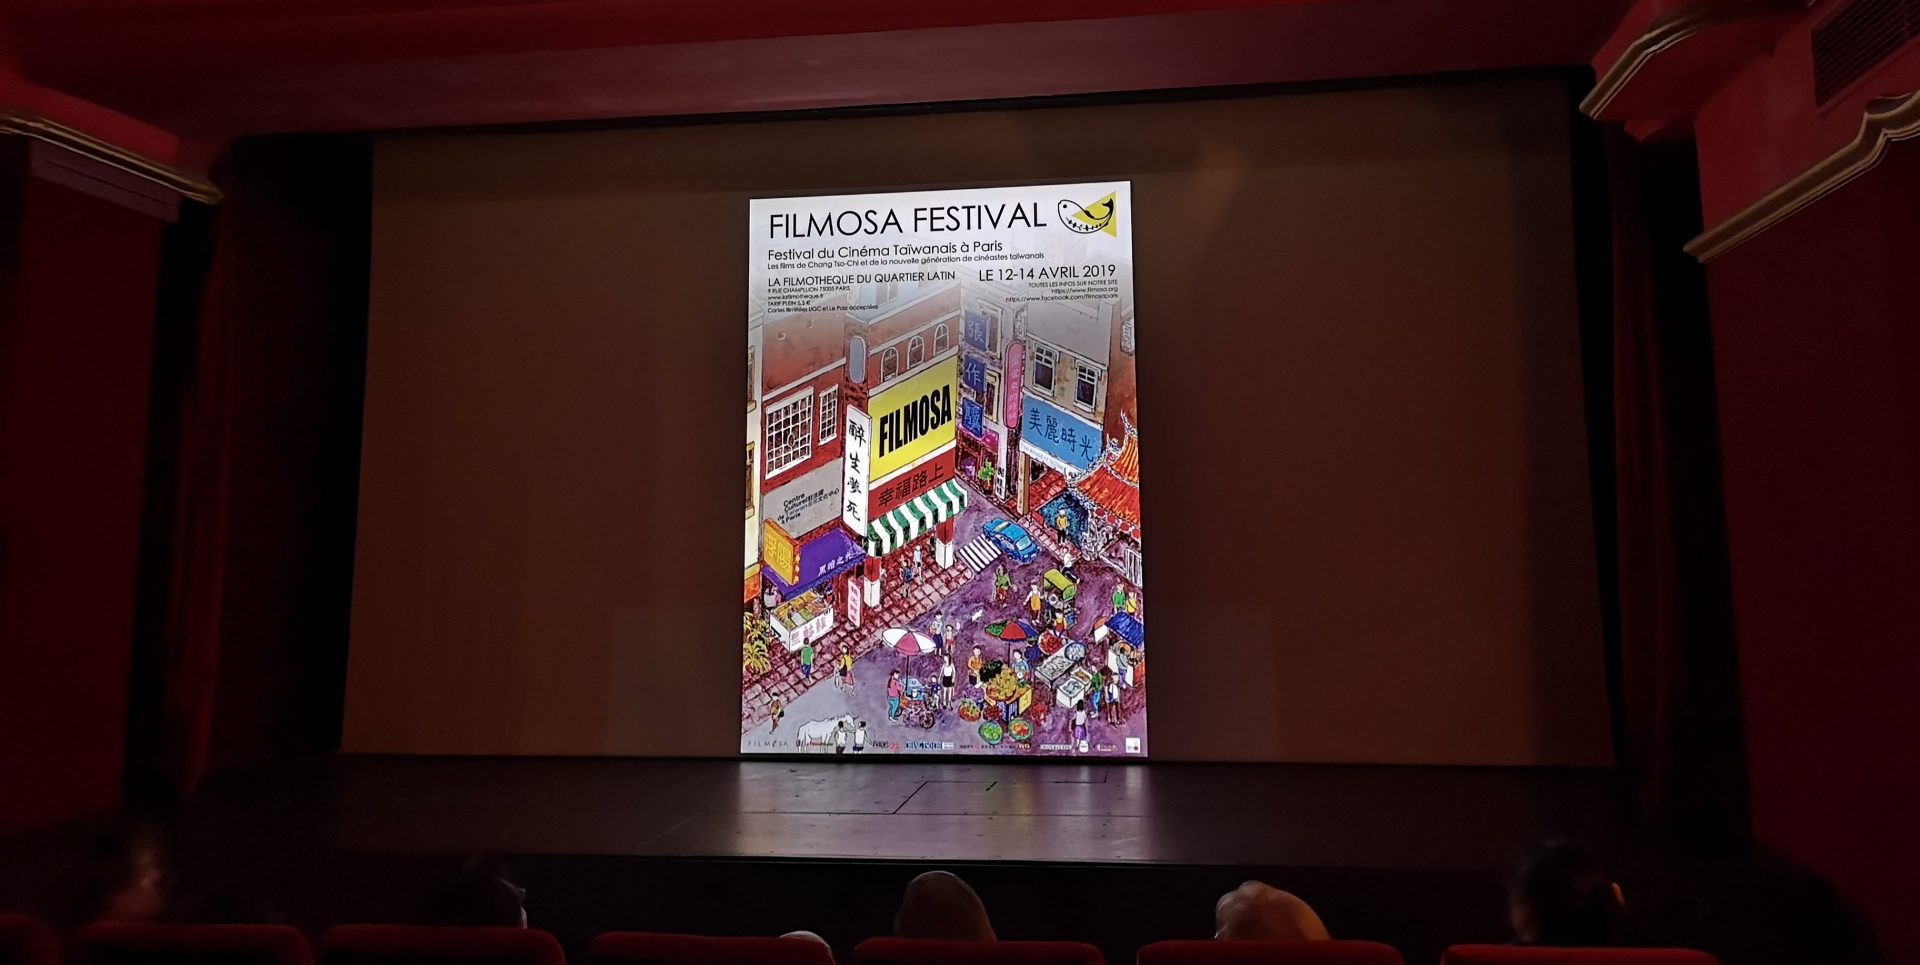 Ouverture du Filmosa Festival, le 12 avril 2019 à Paris. (Copyright : Alice Hérait)